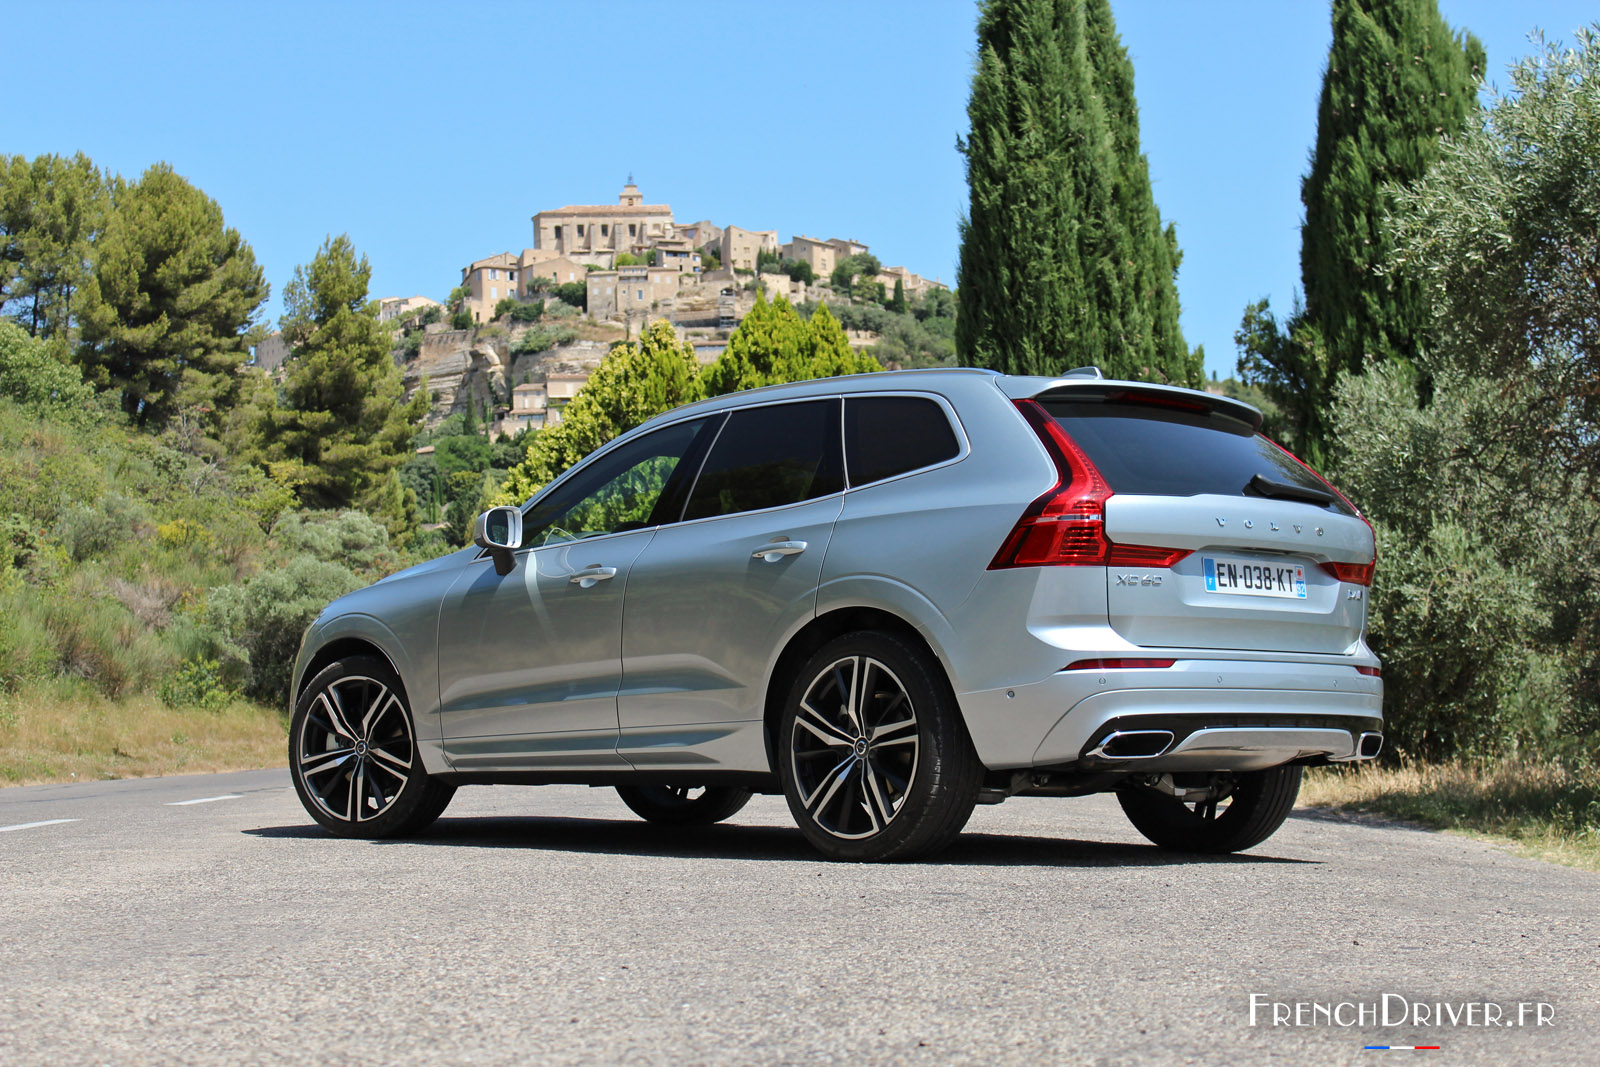 essai du volvo xc60 ii le plus raffin des suv french driver. Black Bedroom Furniture Sets. Home Design Ideas